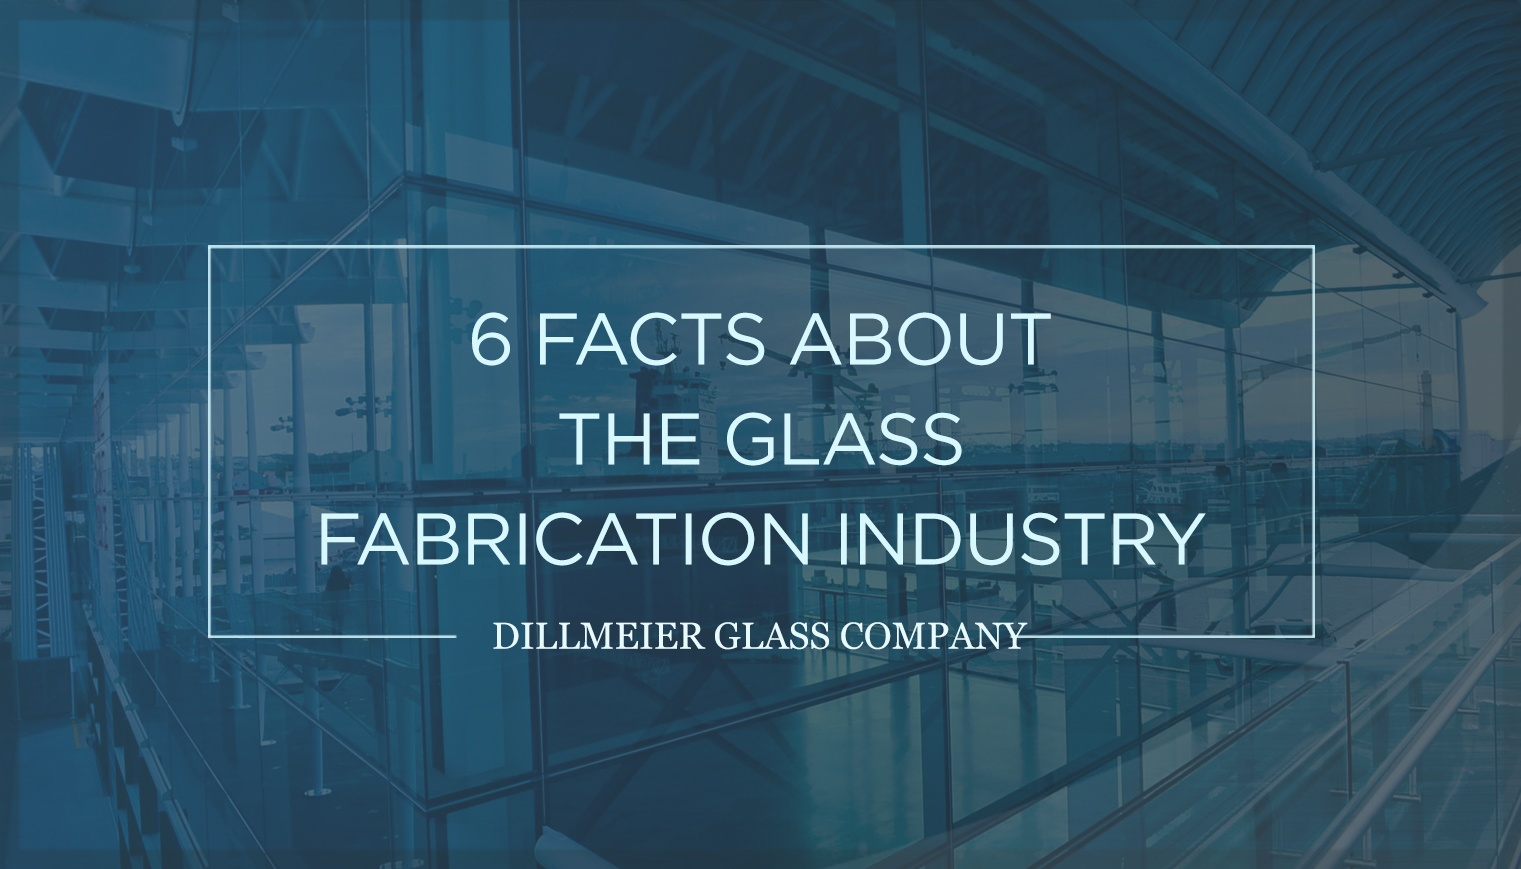 6 Facts About the Glass Fabrication Industry